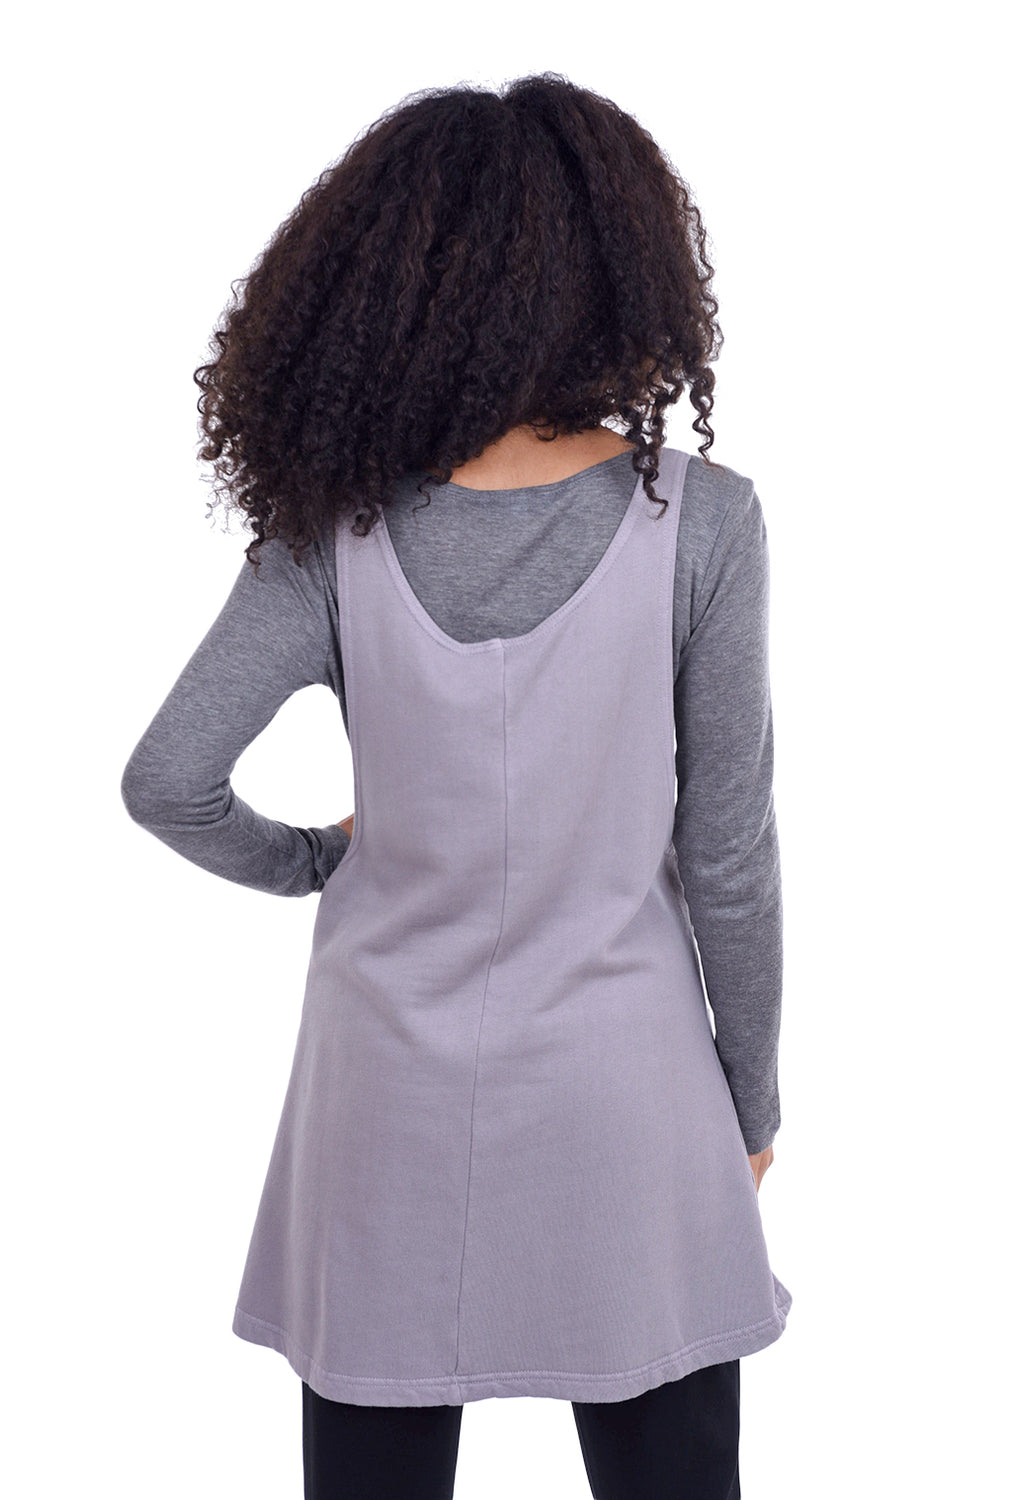 Pacific Cotton Pocket Jumper, Uffizi Mauve